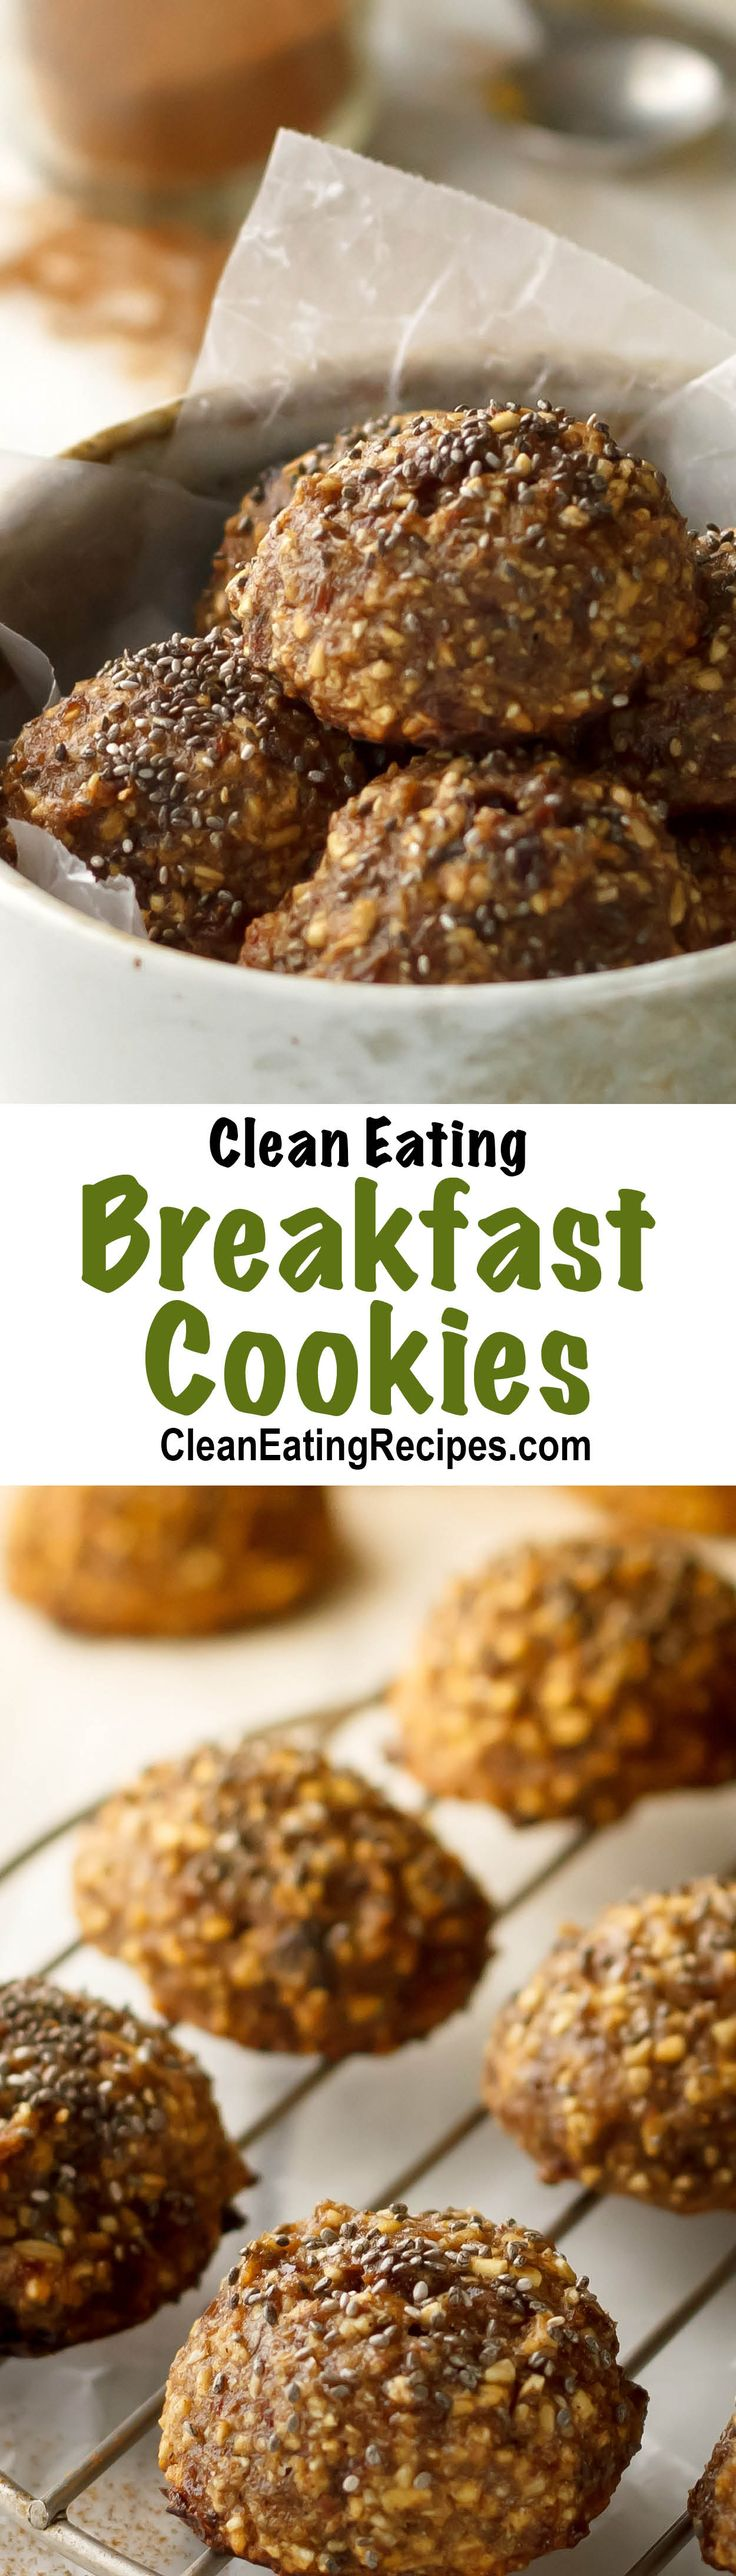 I love making a big batch of these Clean Eating breakfast cookies ahead of time so they are ready for breakfast. I love how quick it is in the morning and they taste good and are healthy too!